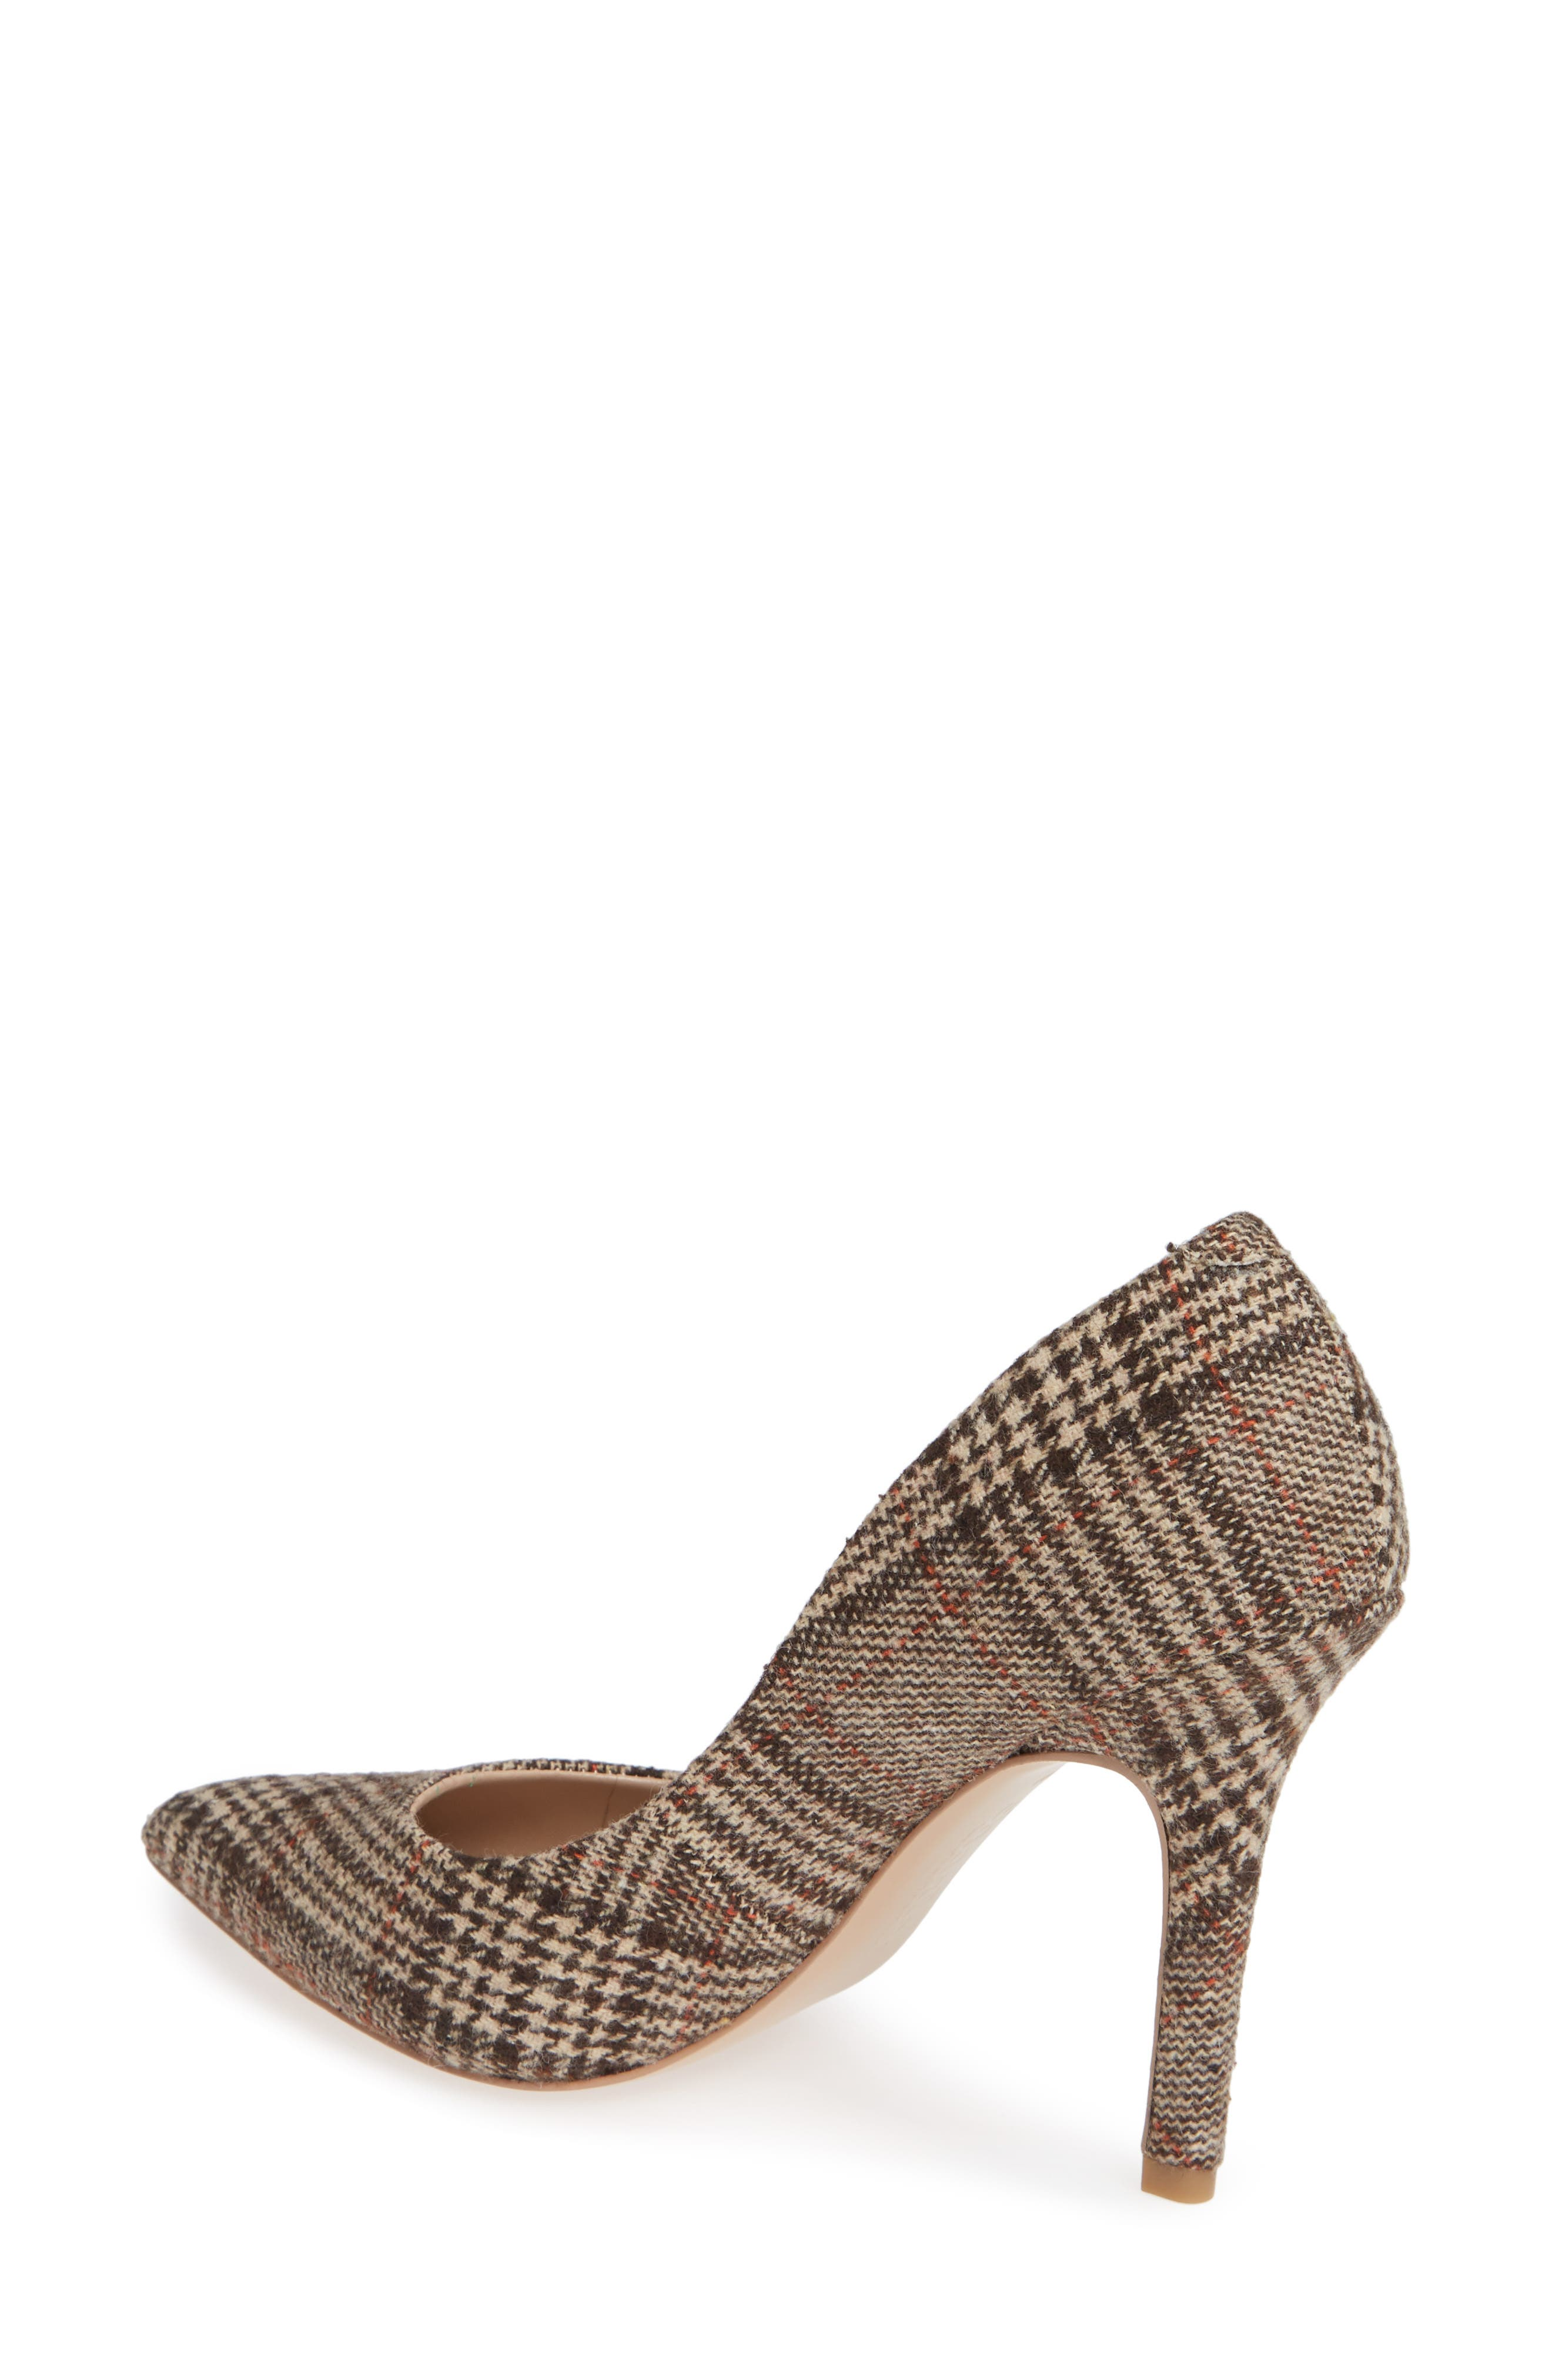 Maxx Pointy Toe Pump,                             Alternate thumbnail 2, color,                             BROWN PLAID FABRIC